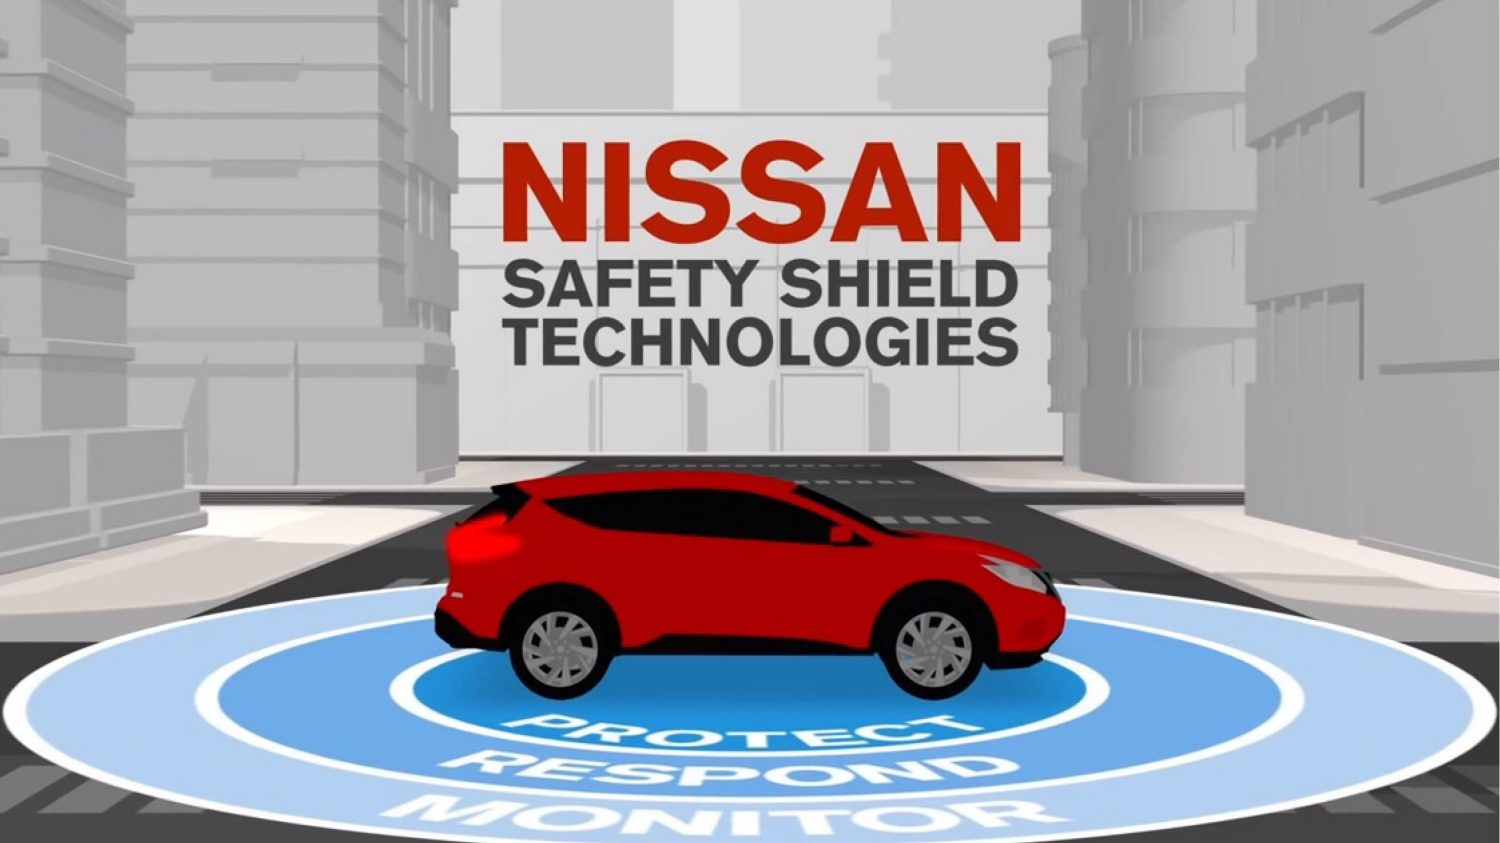 Safety Shield Technology Illustration